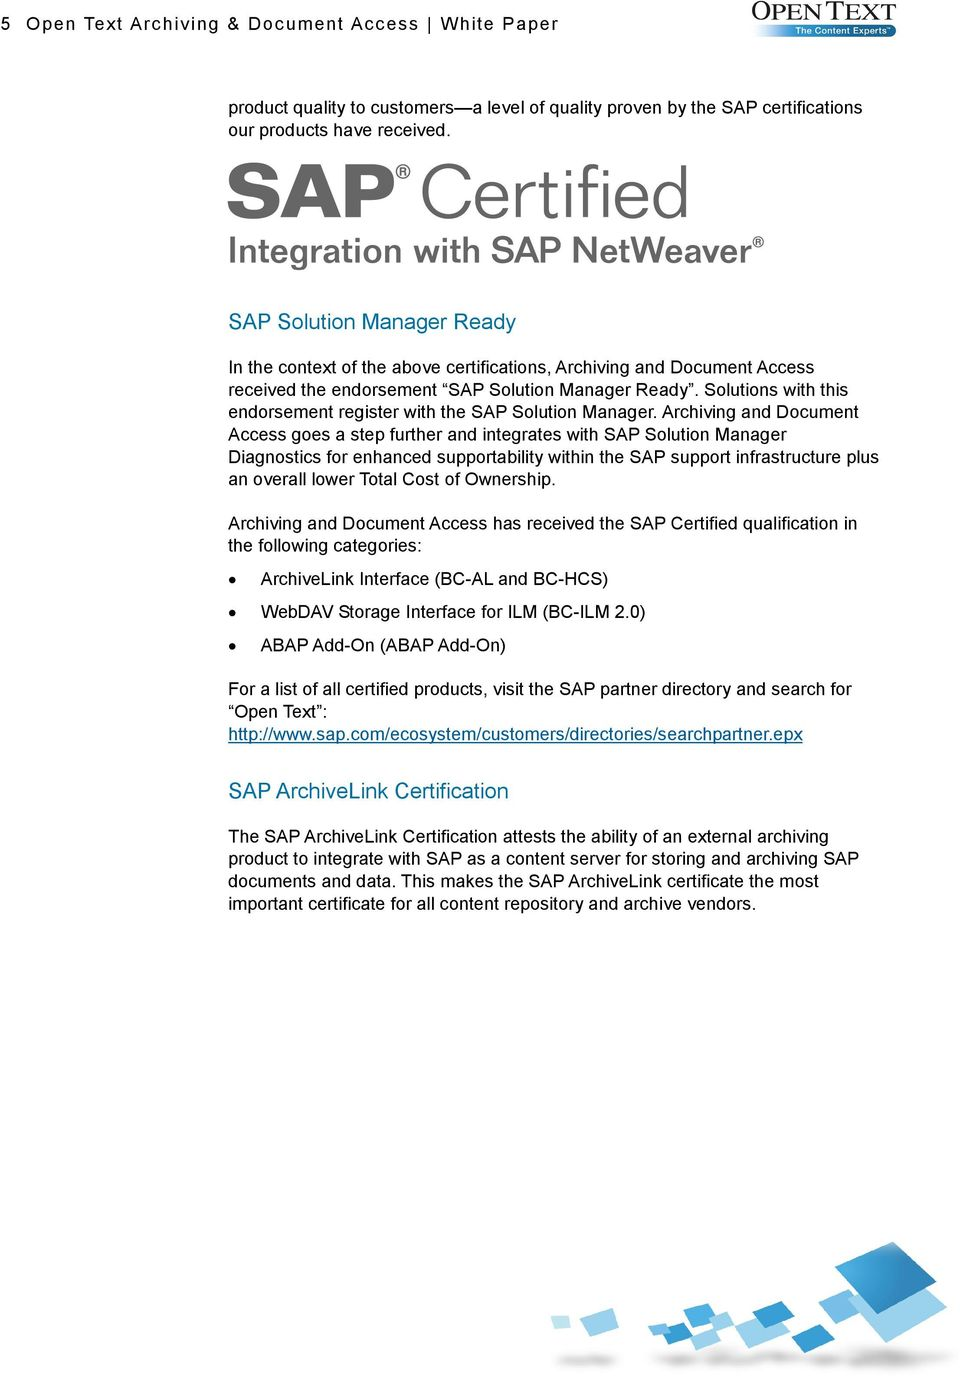 Solutions with this endorsement register with the SAP Solution Manager.